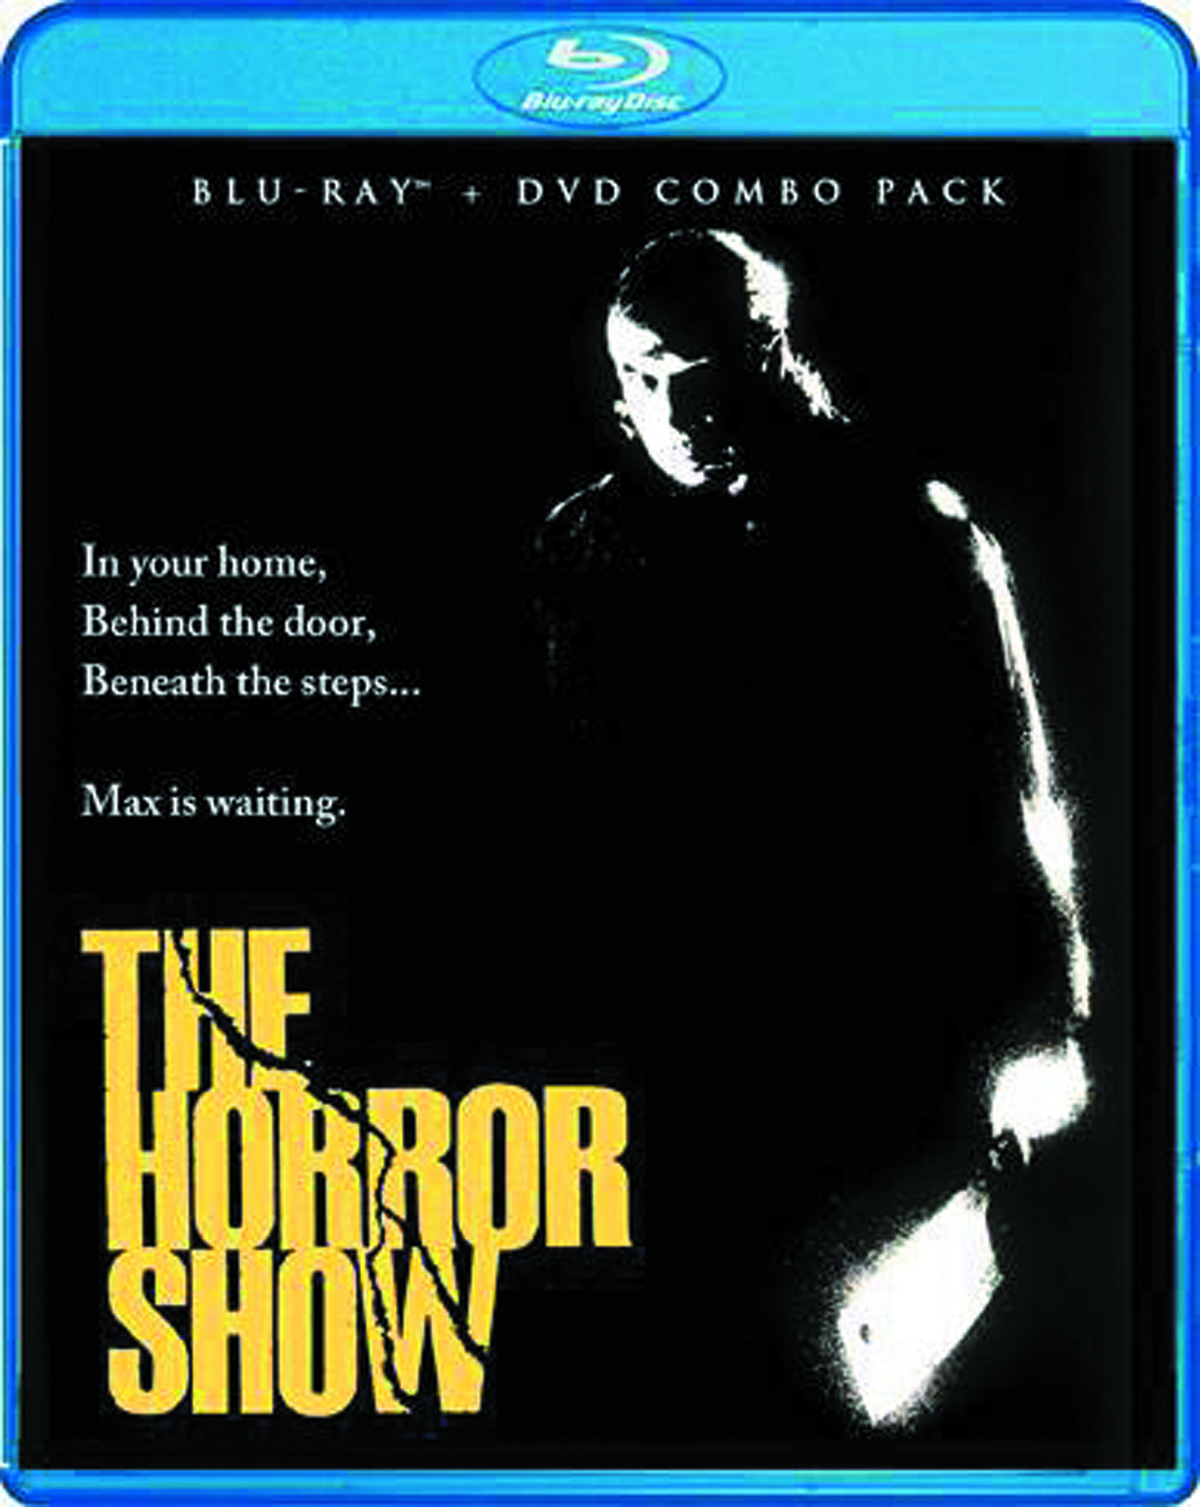 HORROR SHOW BD + DVD